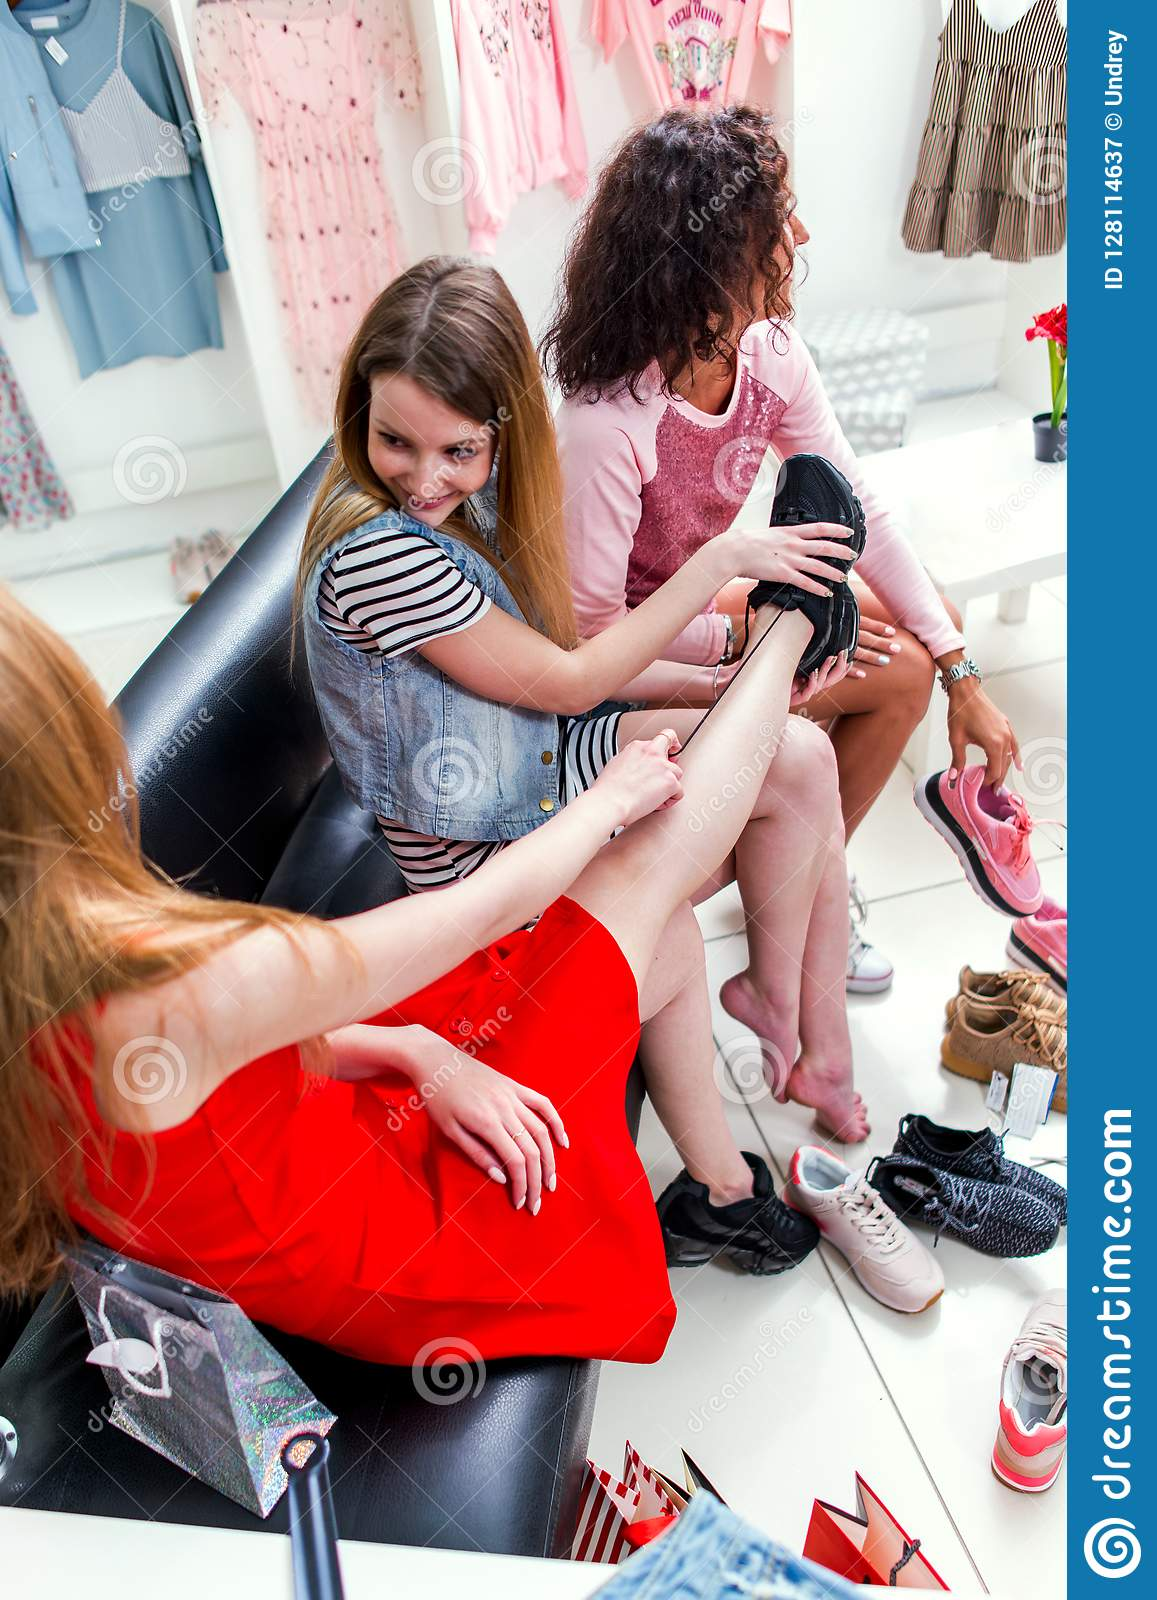 High-angle shot of smiling girlfriends choosing putting on sports shoes sitting on bench chatting and laughing while